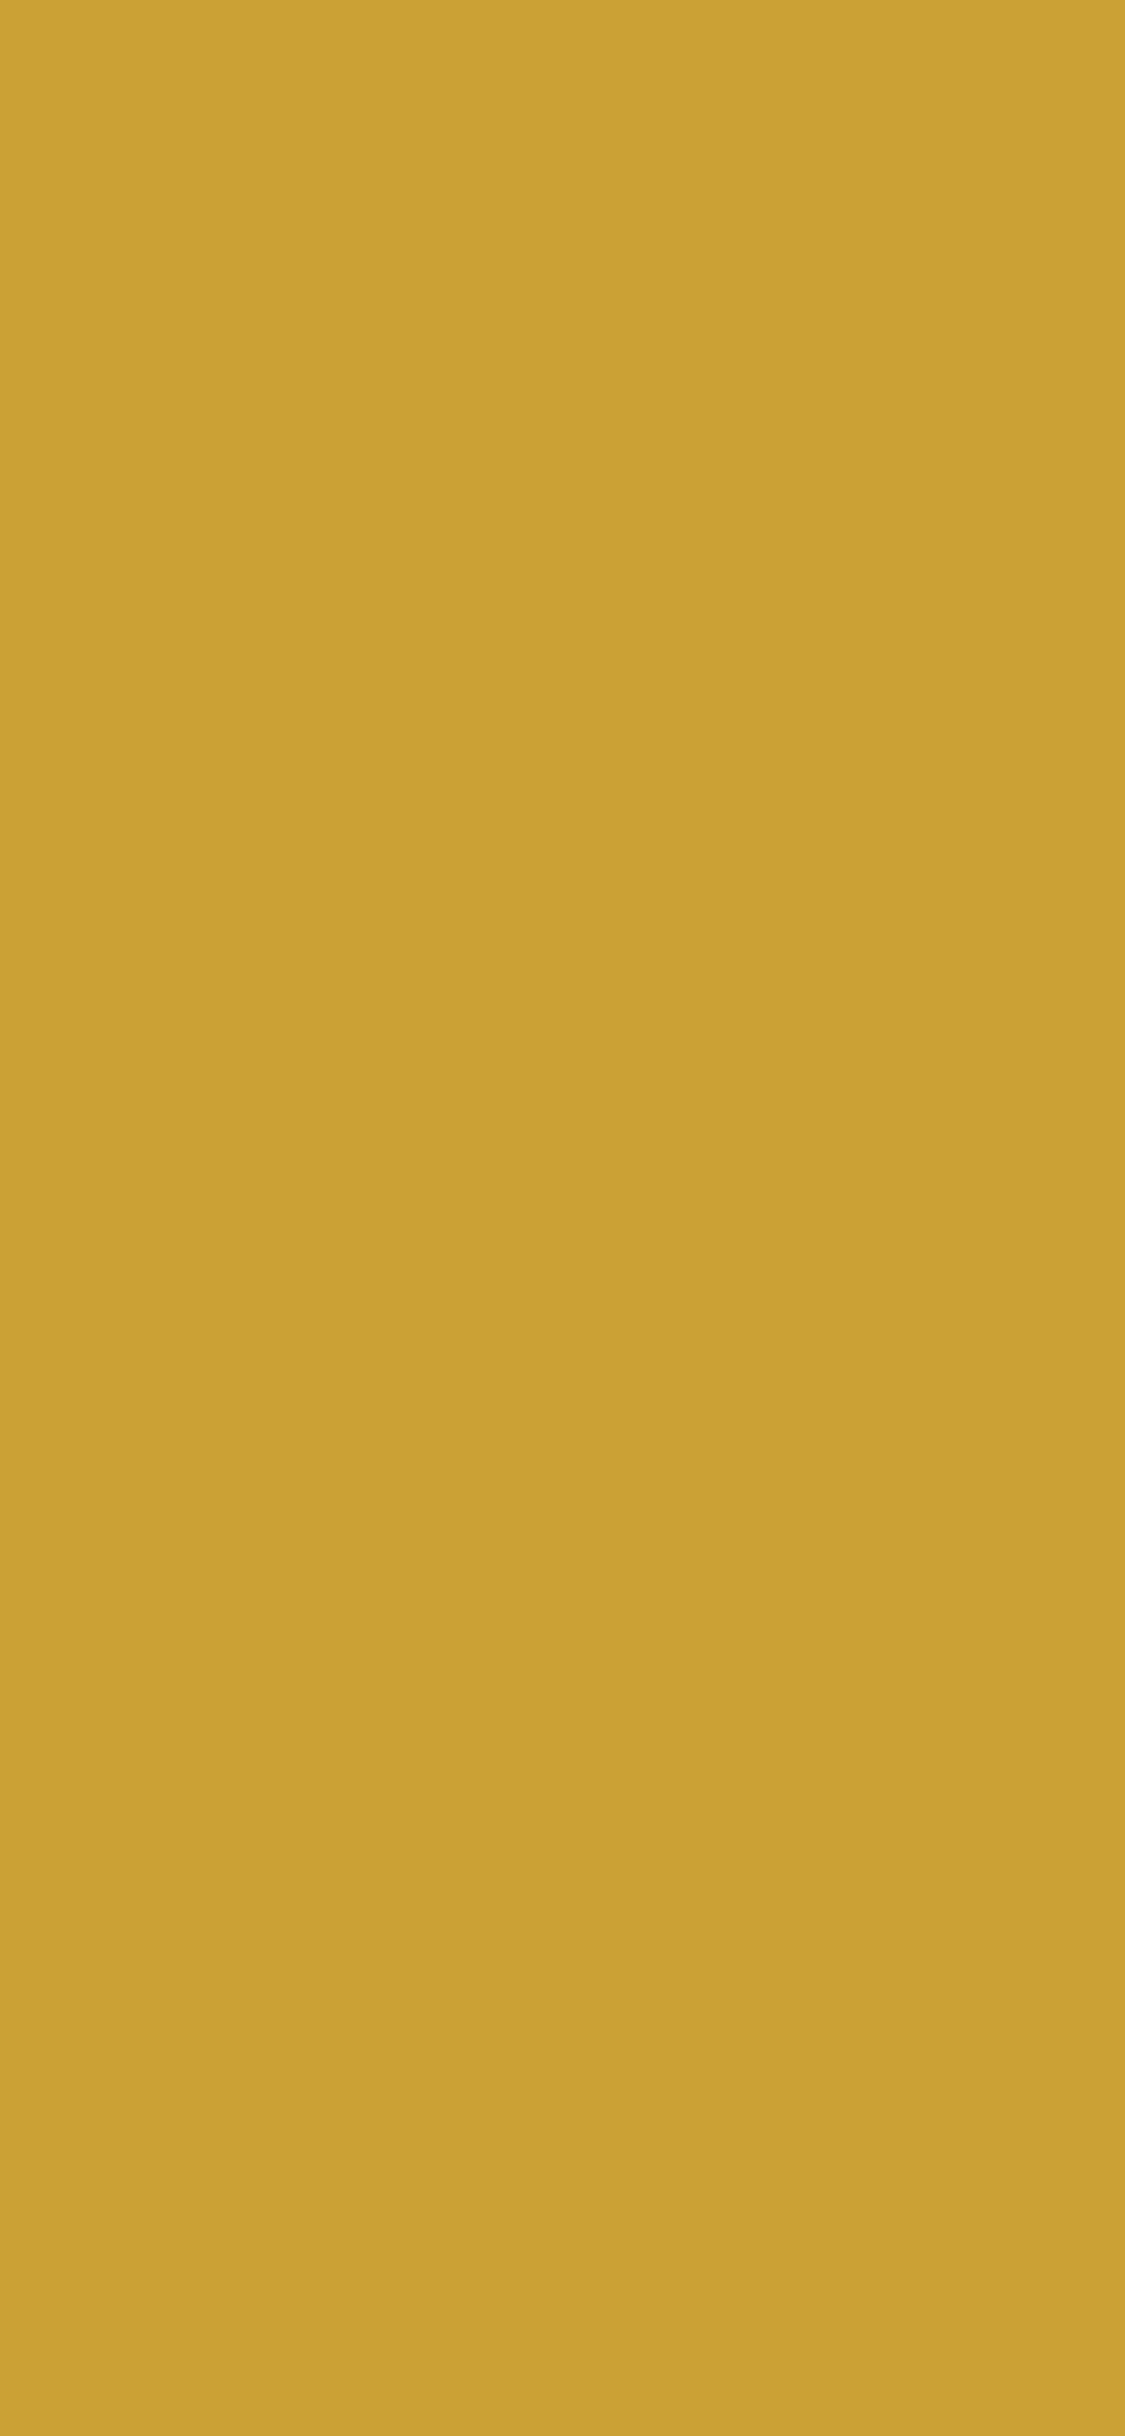 1125x2436 Satin Sheen Gold Solid Color Background